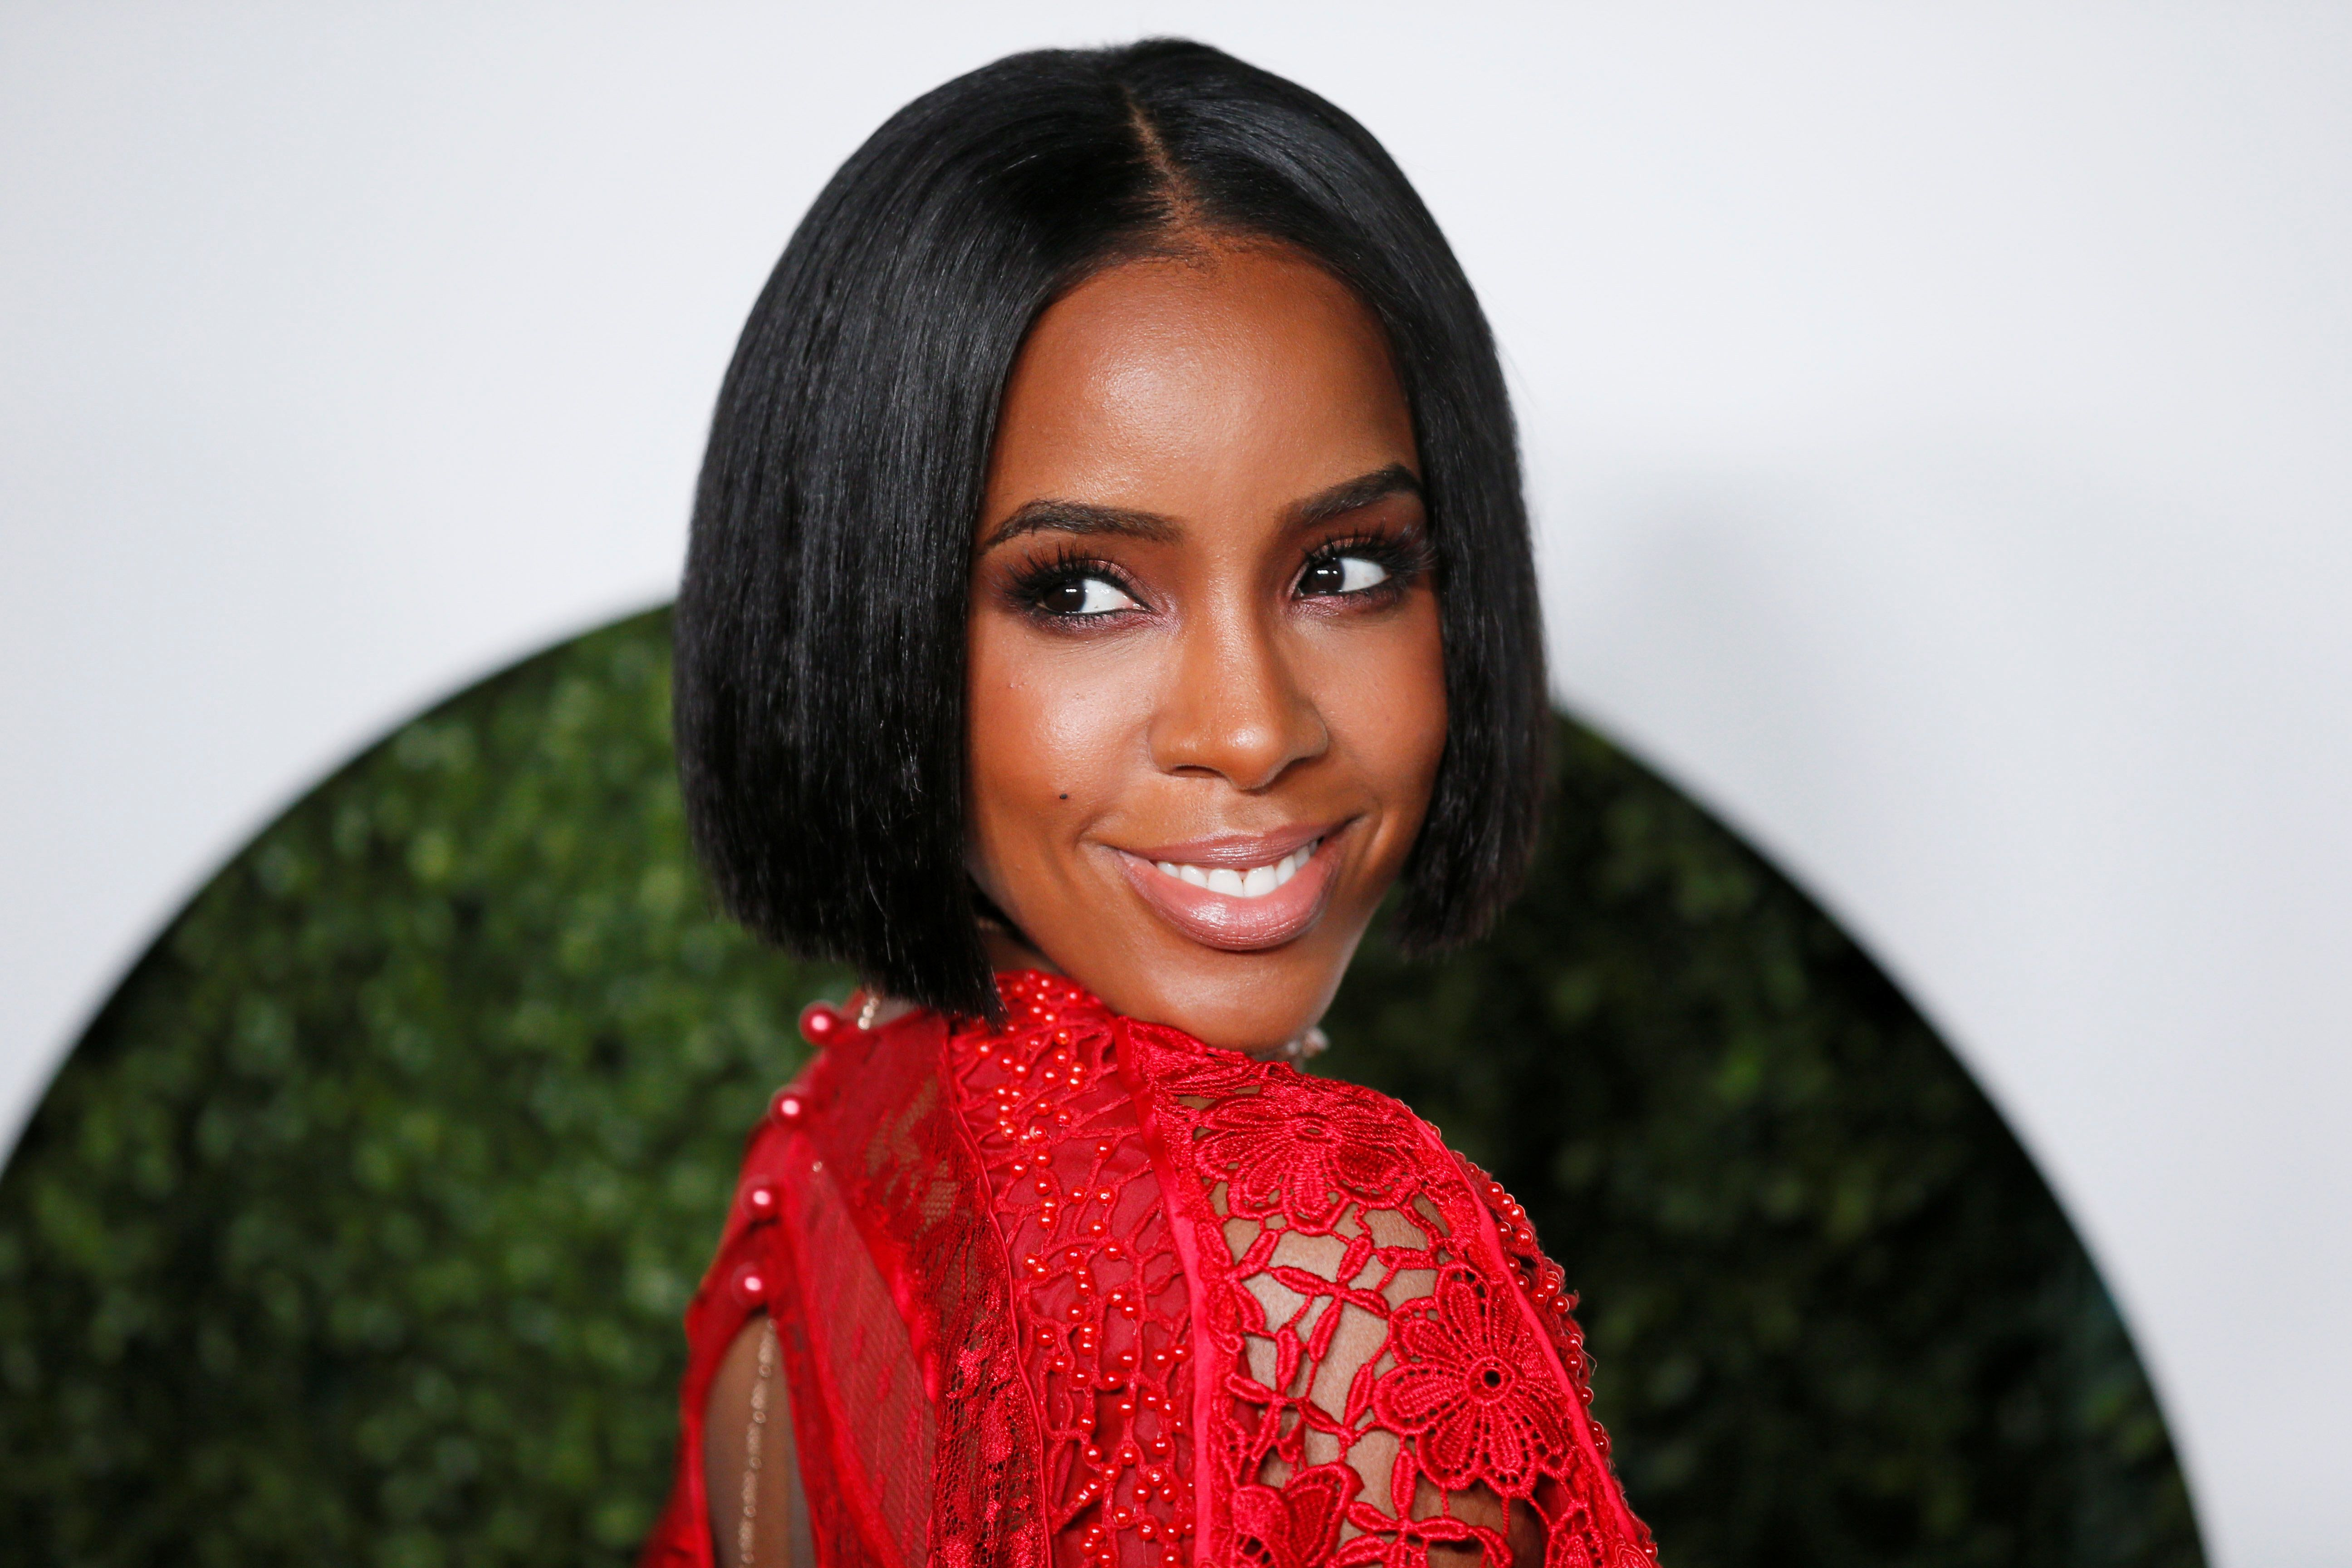 Singer Kelly Rowland poses at the GQ Men of the Year Party in West Hollywood, California, December 8, 2016. REUTERS/Danny Moloshok